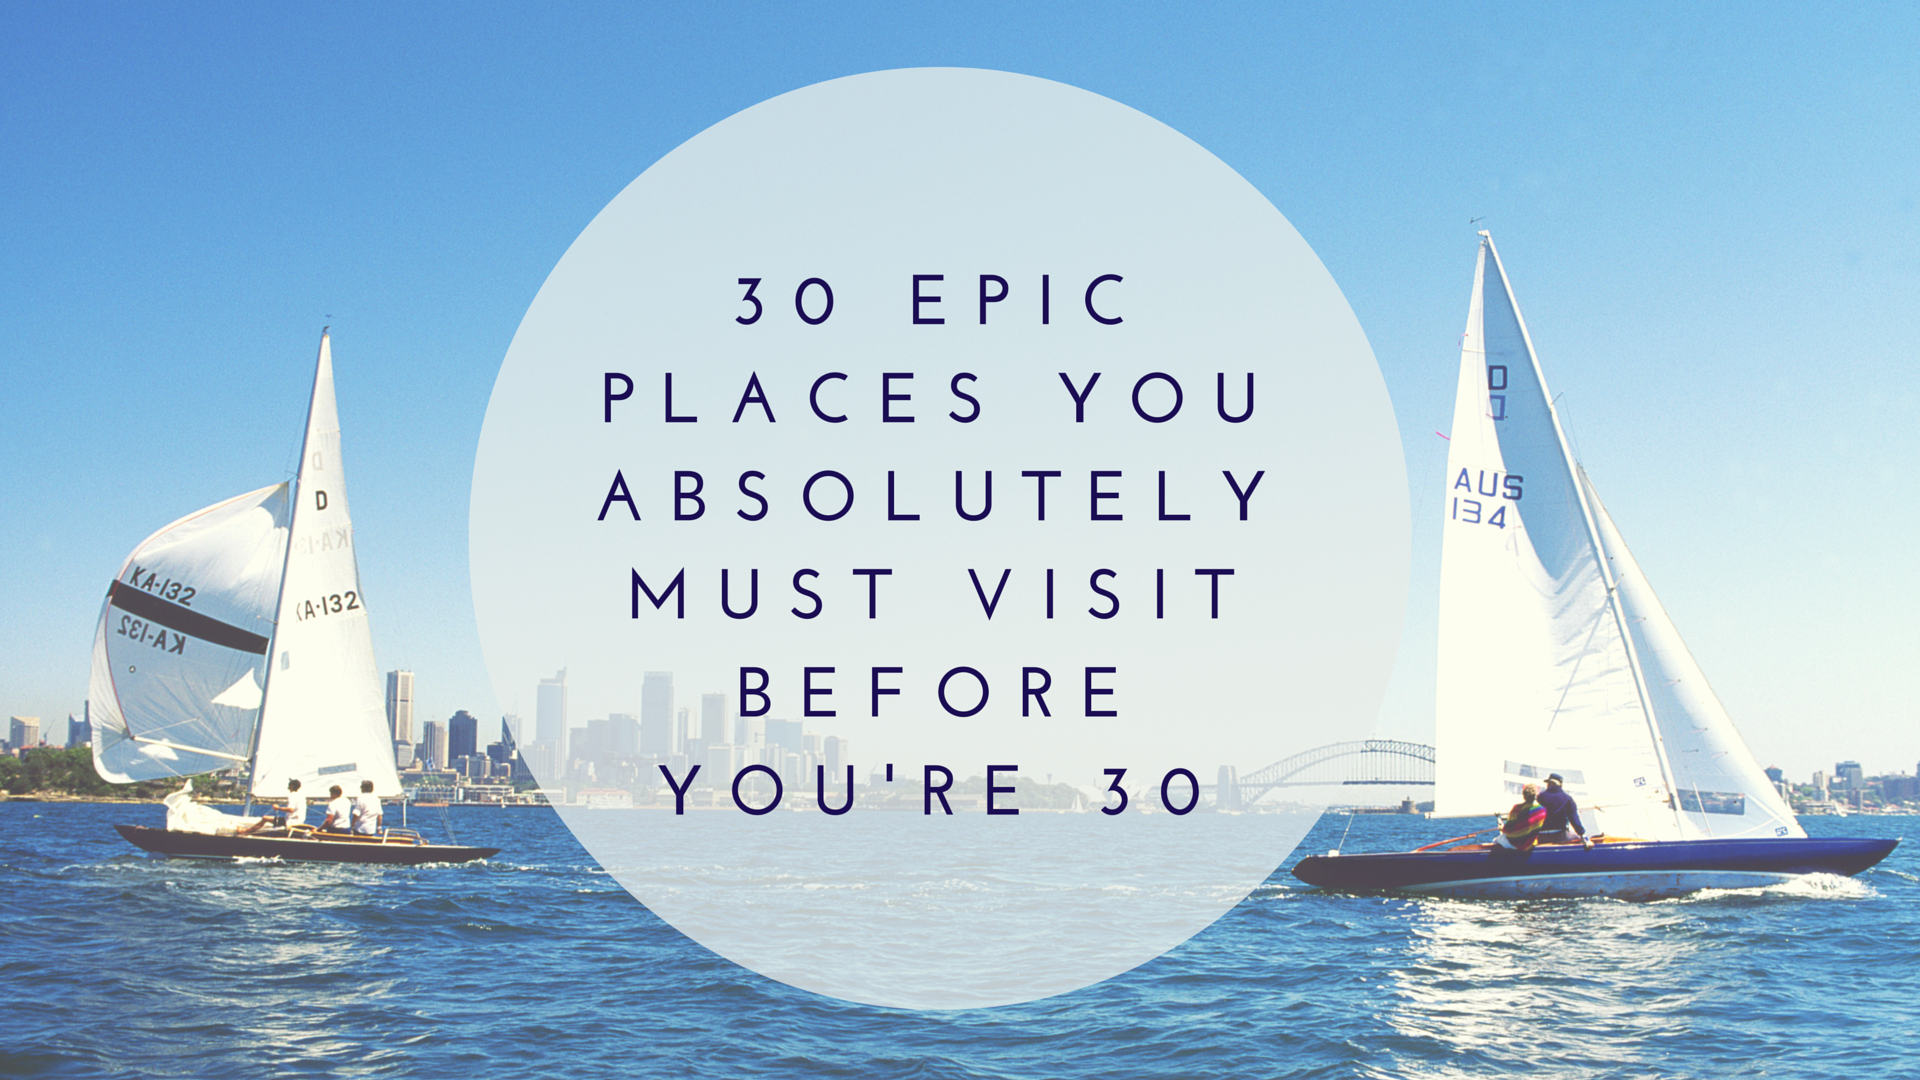 30 Epic Places You Absolutely Must Visit Before You're 30